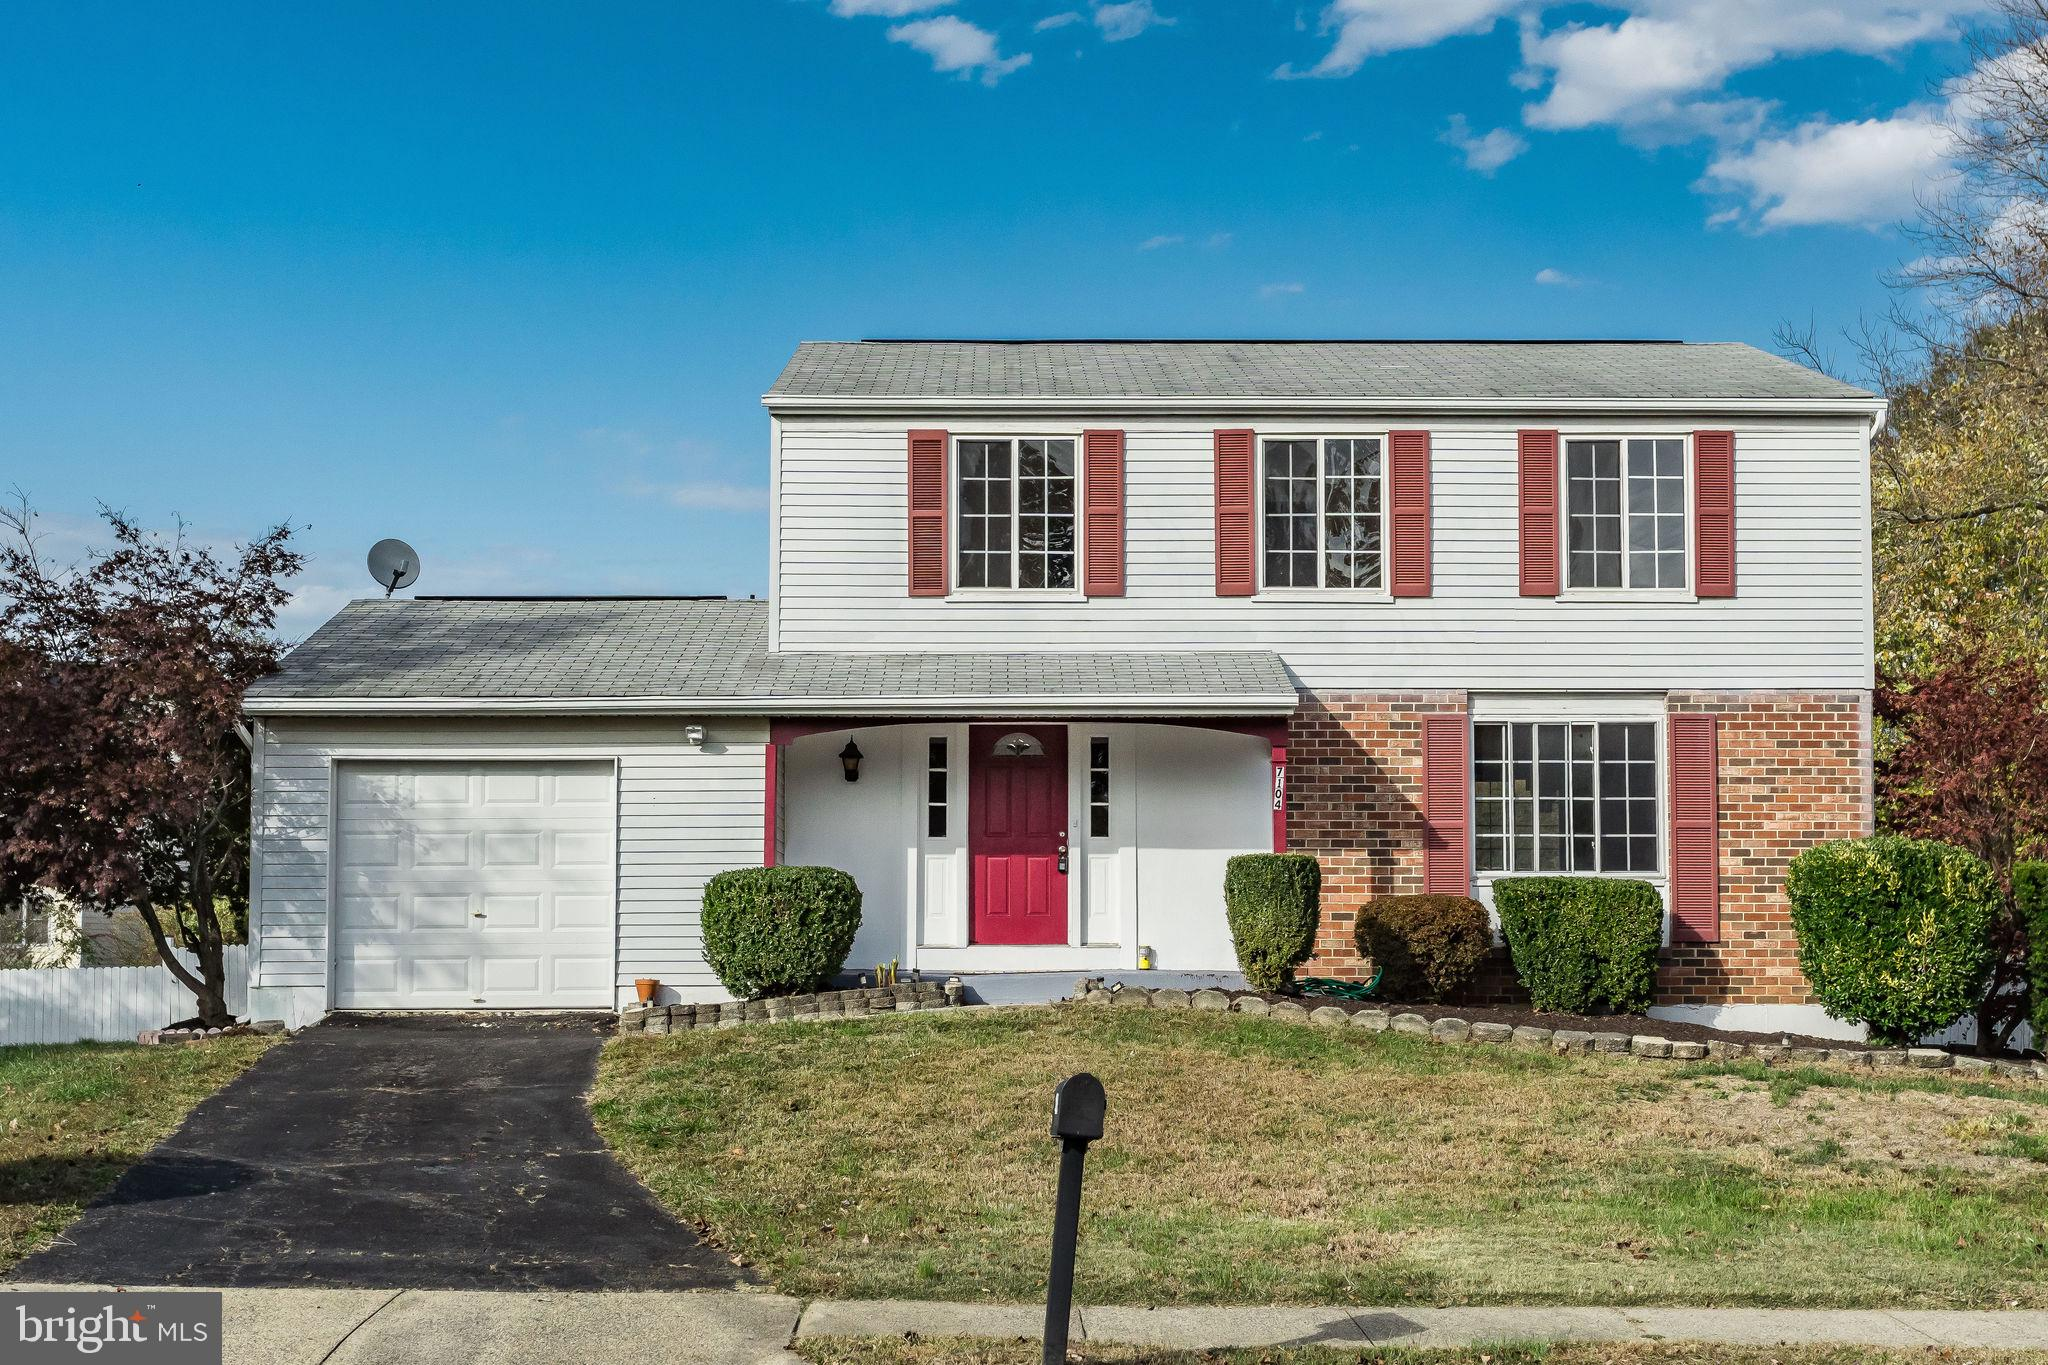 7104 STERLING GROVE DRIVE, SPRINGFIELD, VA 22150